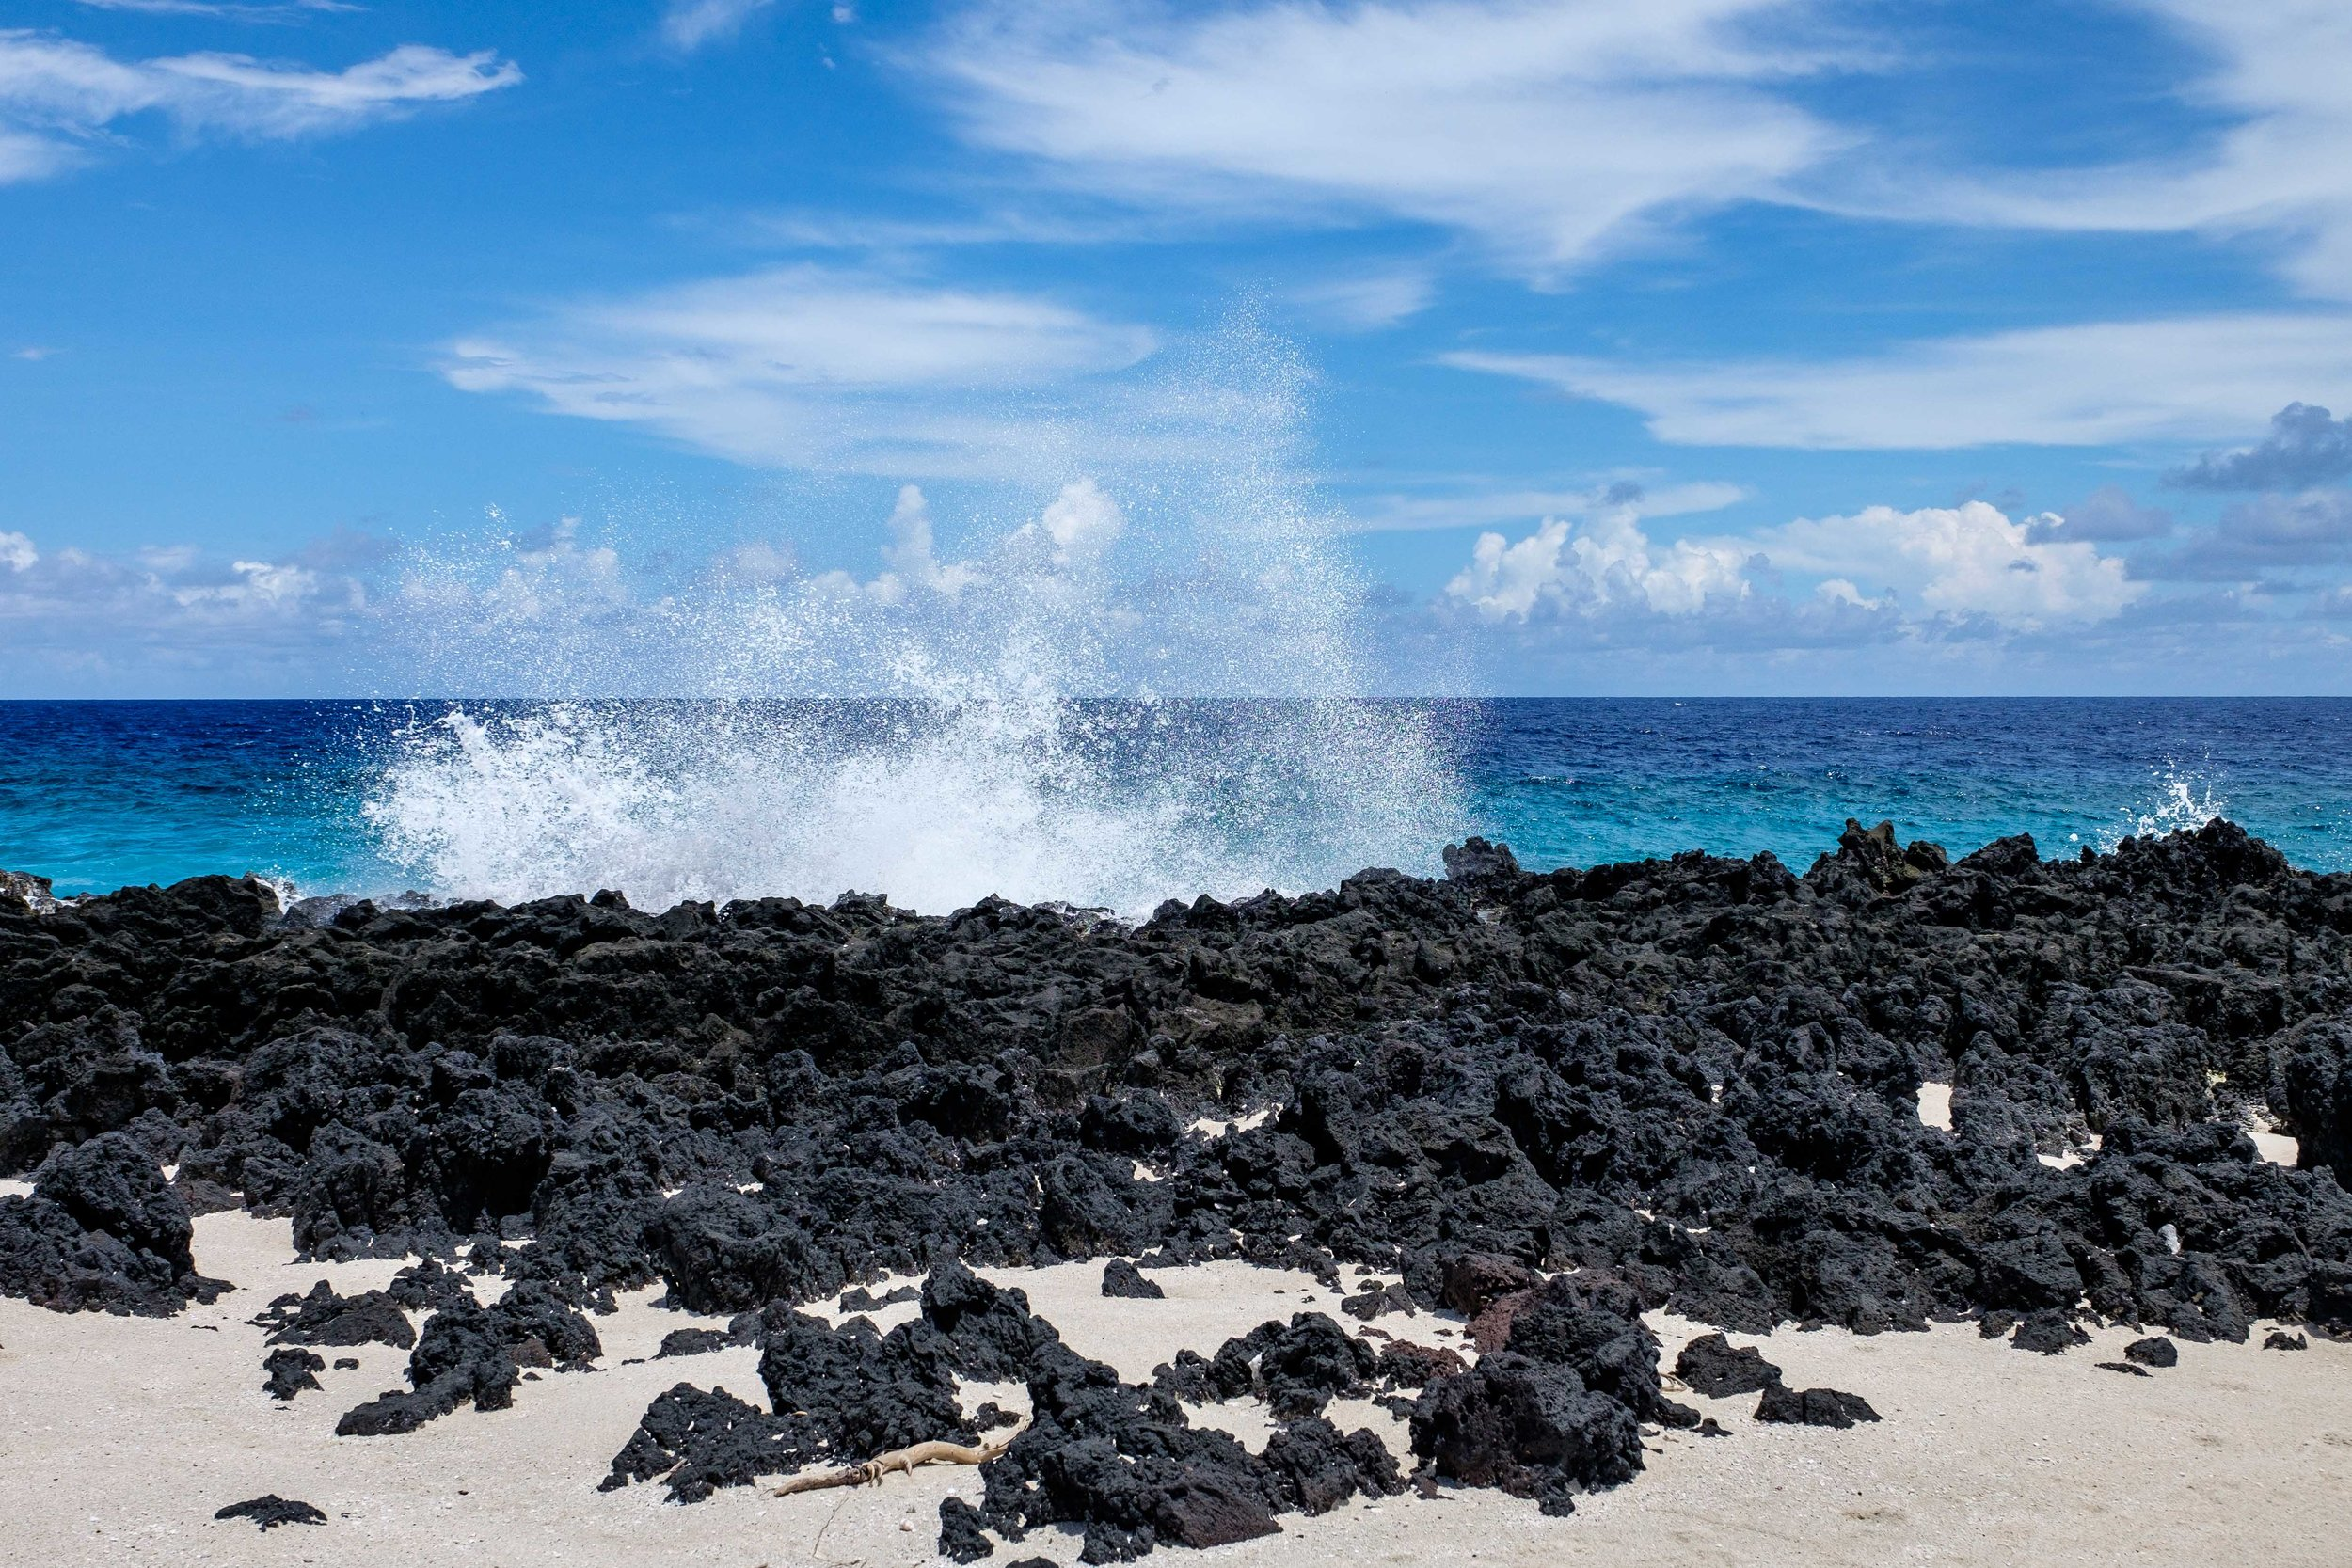 Where the lava rock meets the sea.